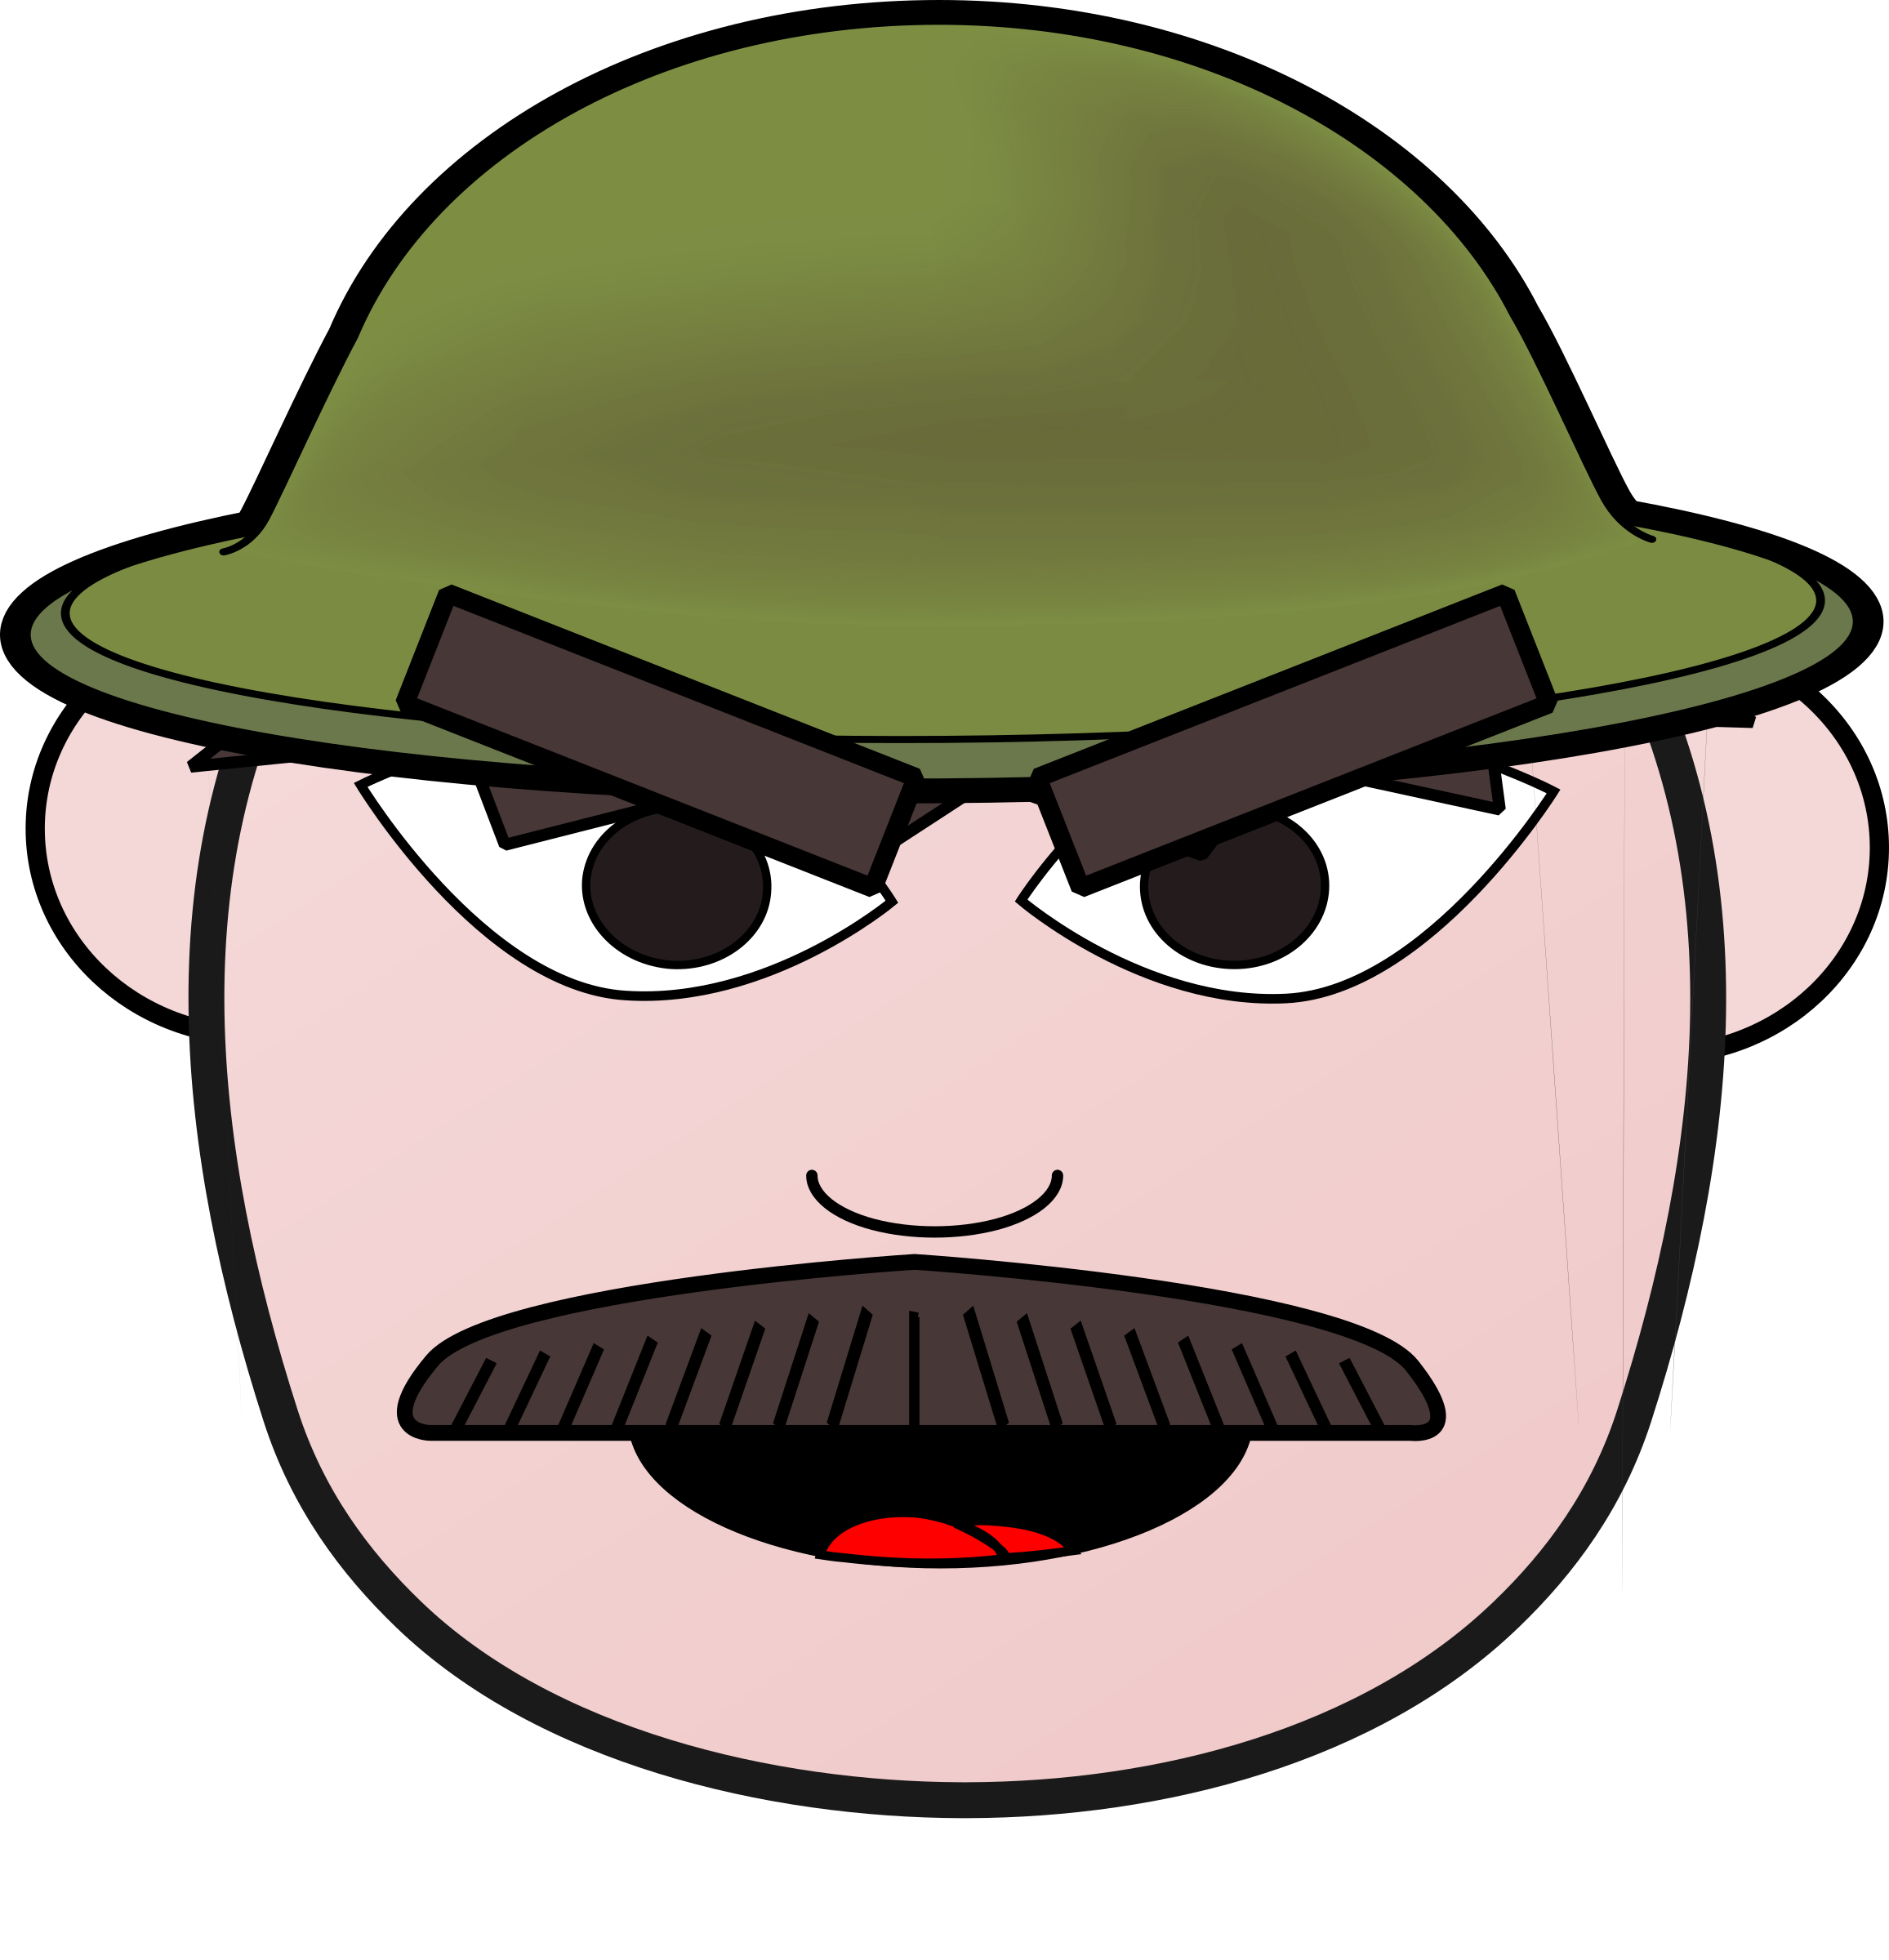 Angry clipart angry man. Soldier icons png free